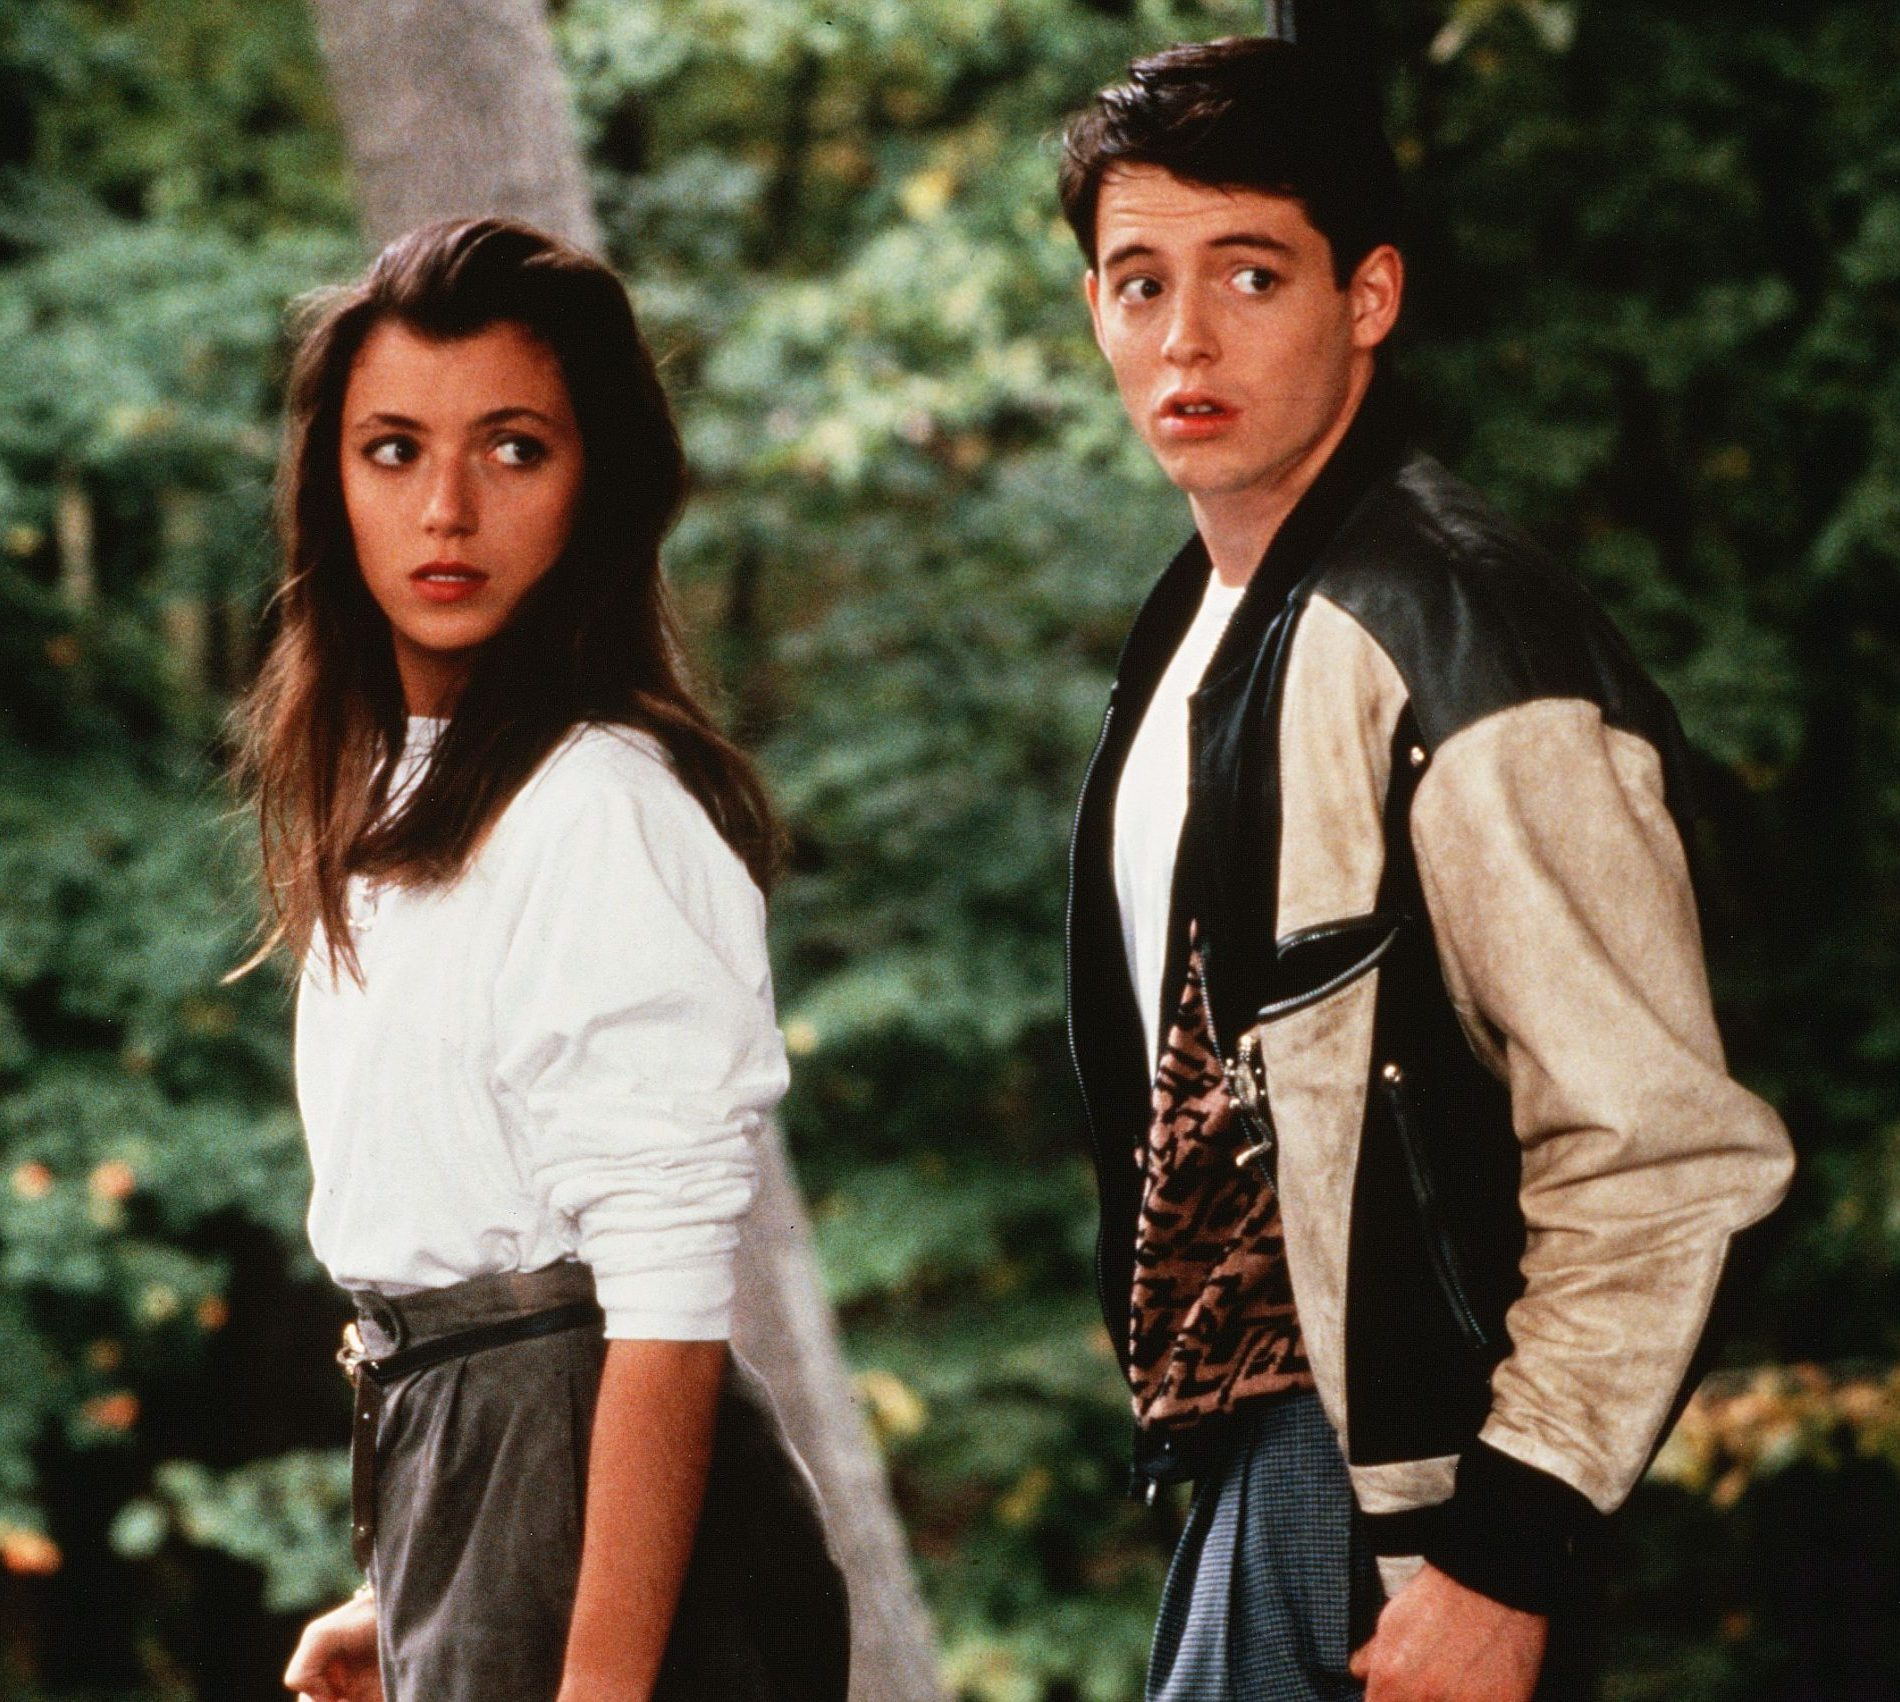 nintchdbpict000000586747 scaled e1617029538898 20 Things You Probably Didn't Know About Ferris Bueller's Day Off